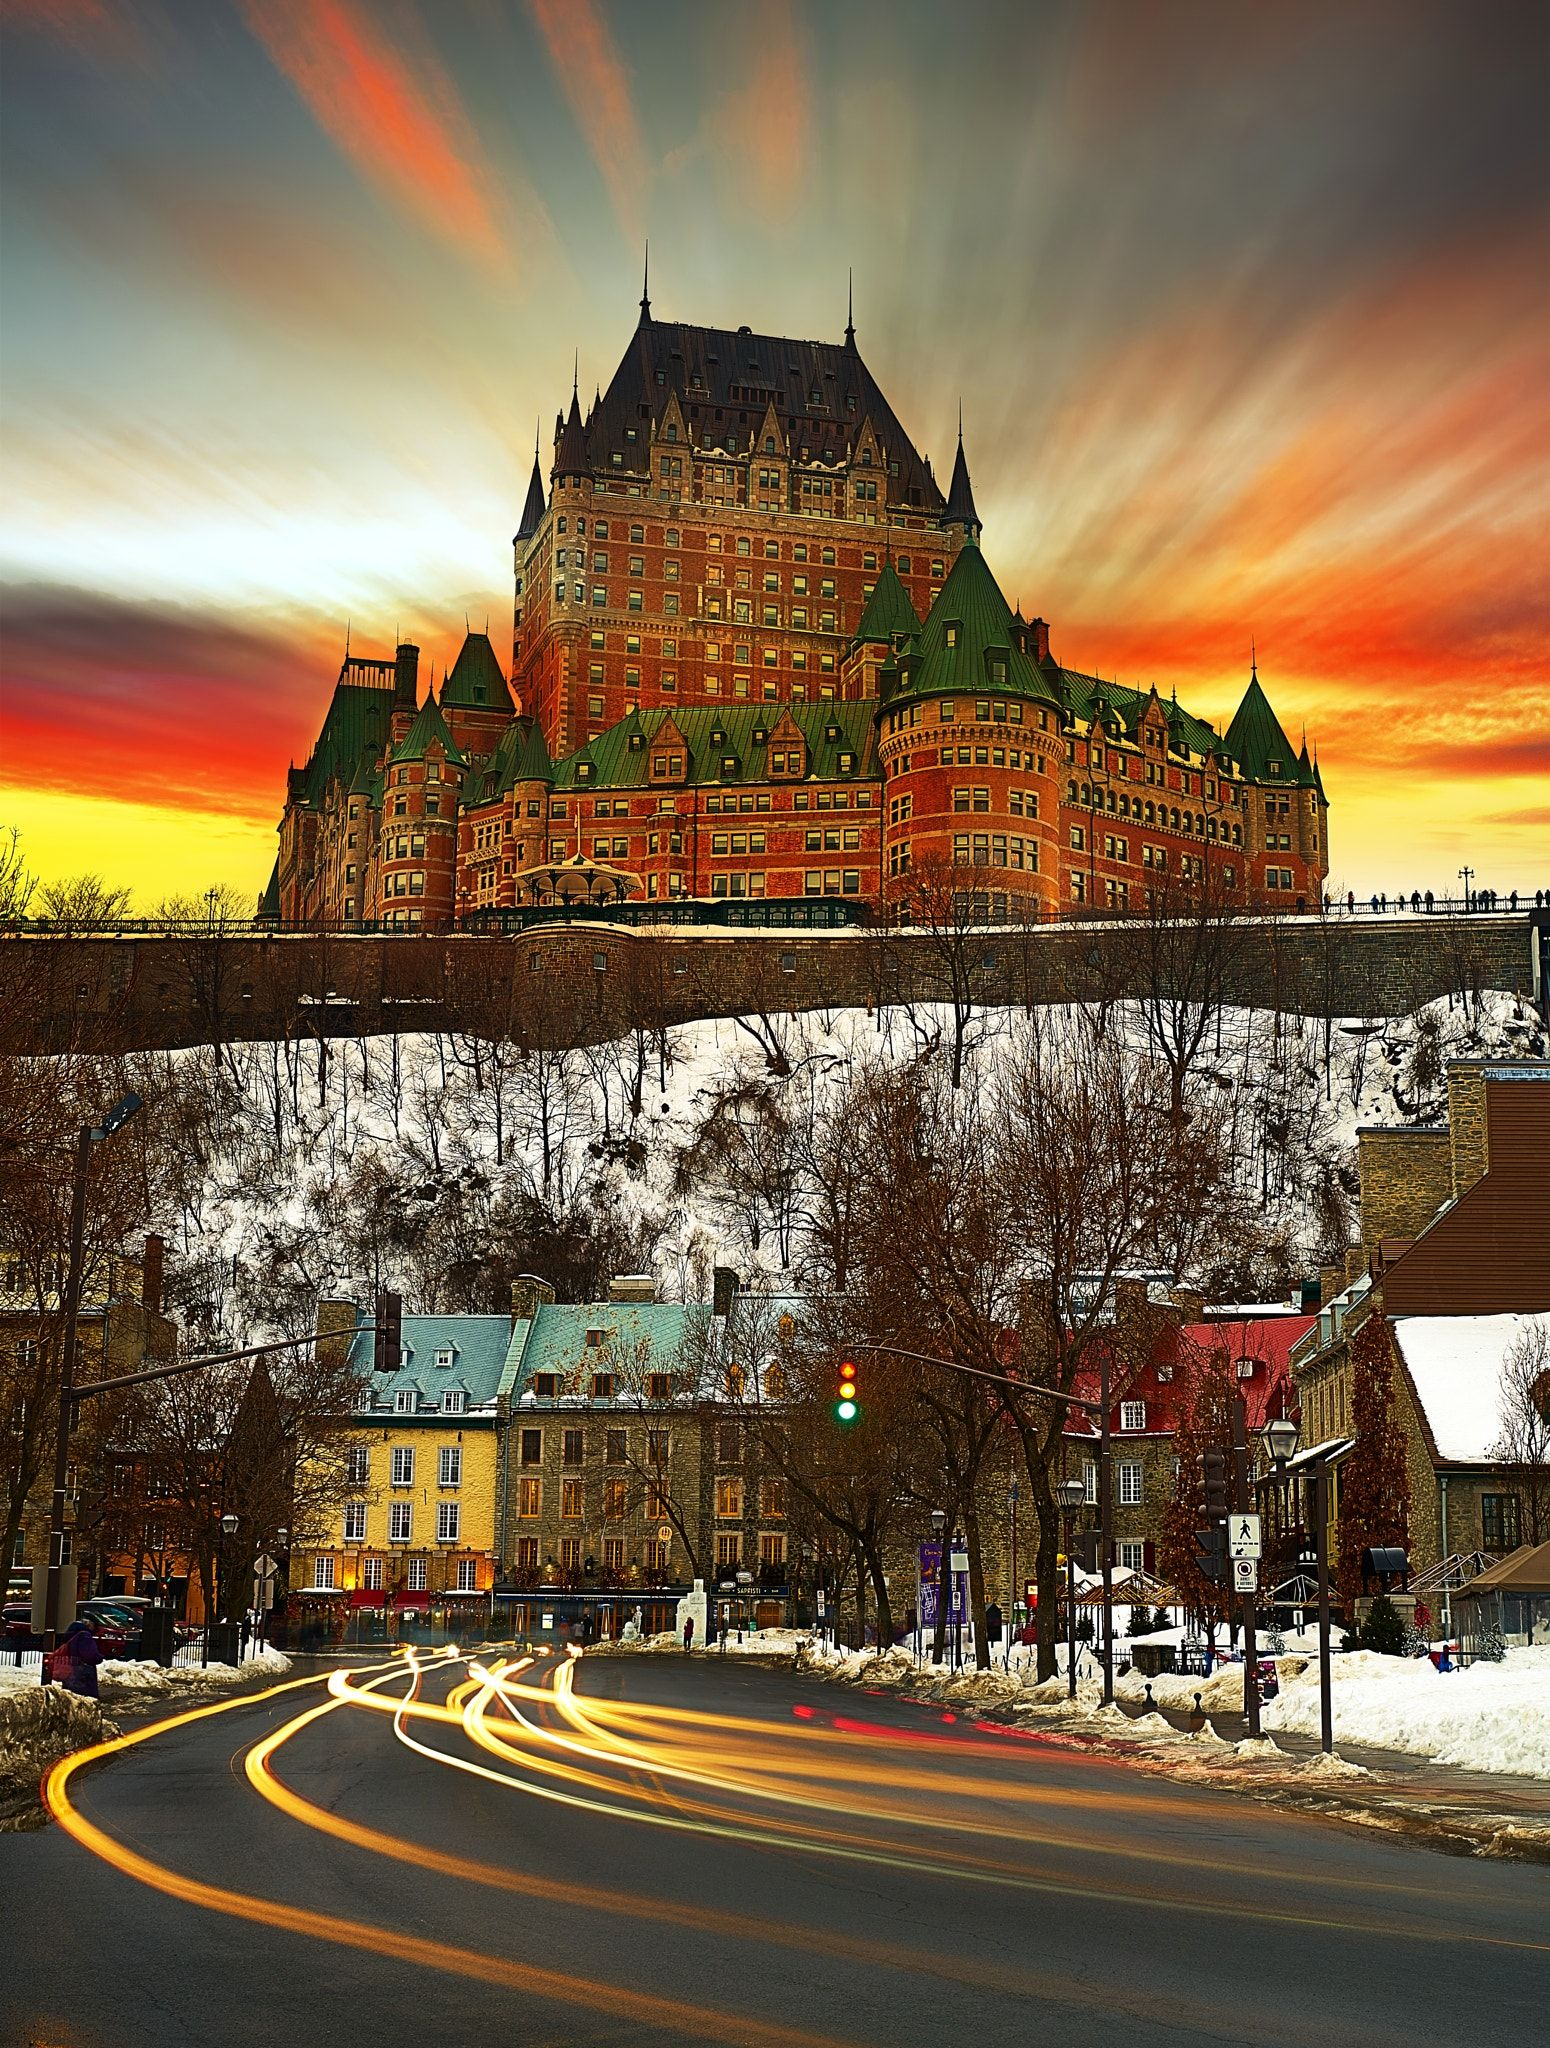 The Chateau Frontenac The Famous Fairmont Le Chateau Frontenac Hotel In Quebec City Canada Frontenac Quebec City Chateau